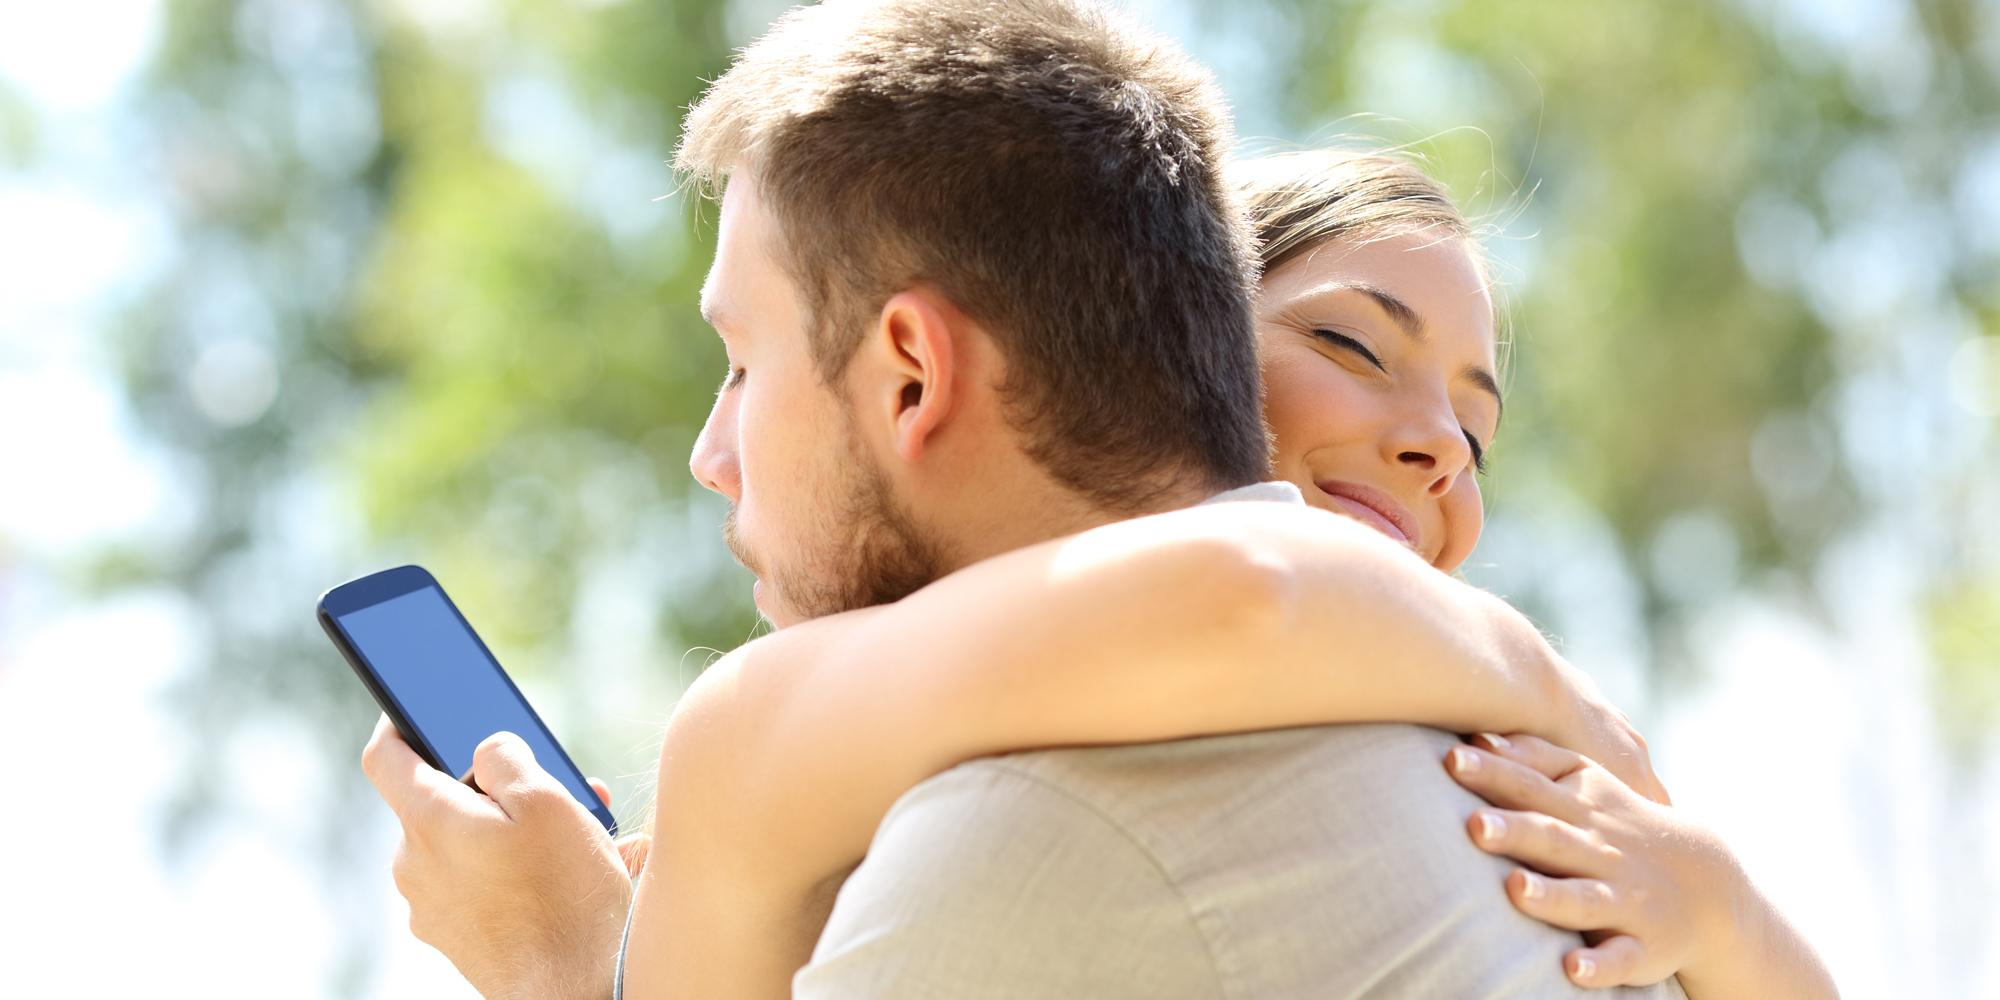 The most common day for your partner to cheat on you | indy100